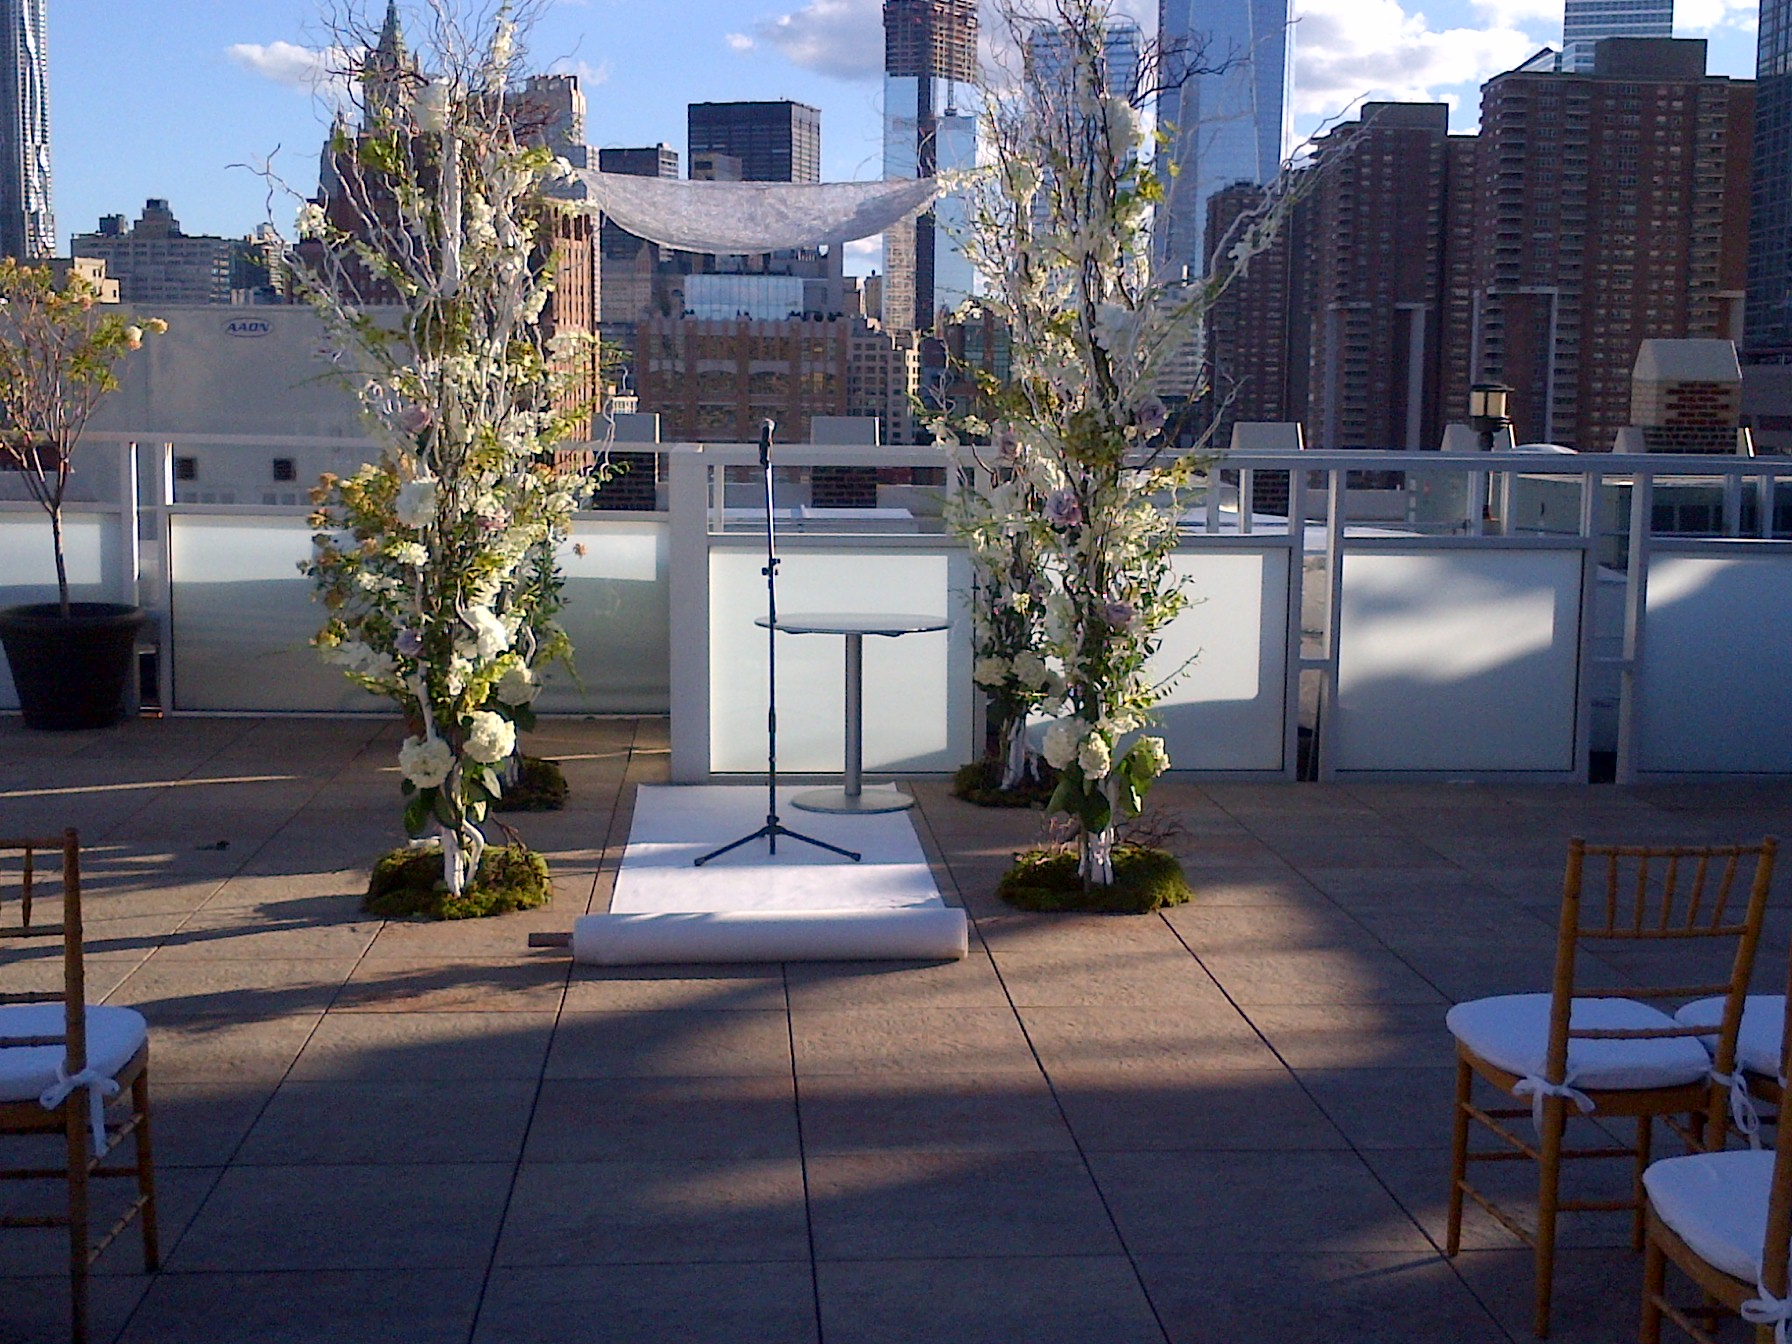 guitar and cello wedding ceremony music on tribeca rooftop penguin 9 23 tribeca rooftop2